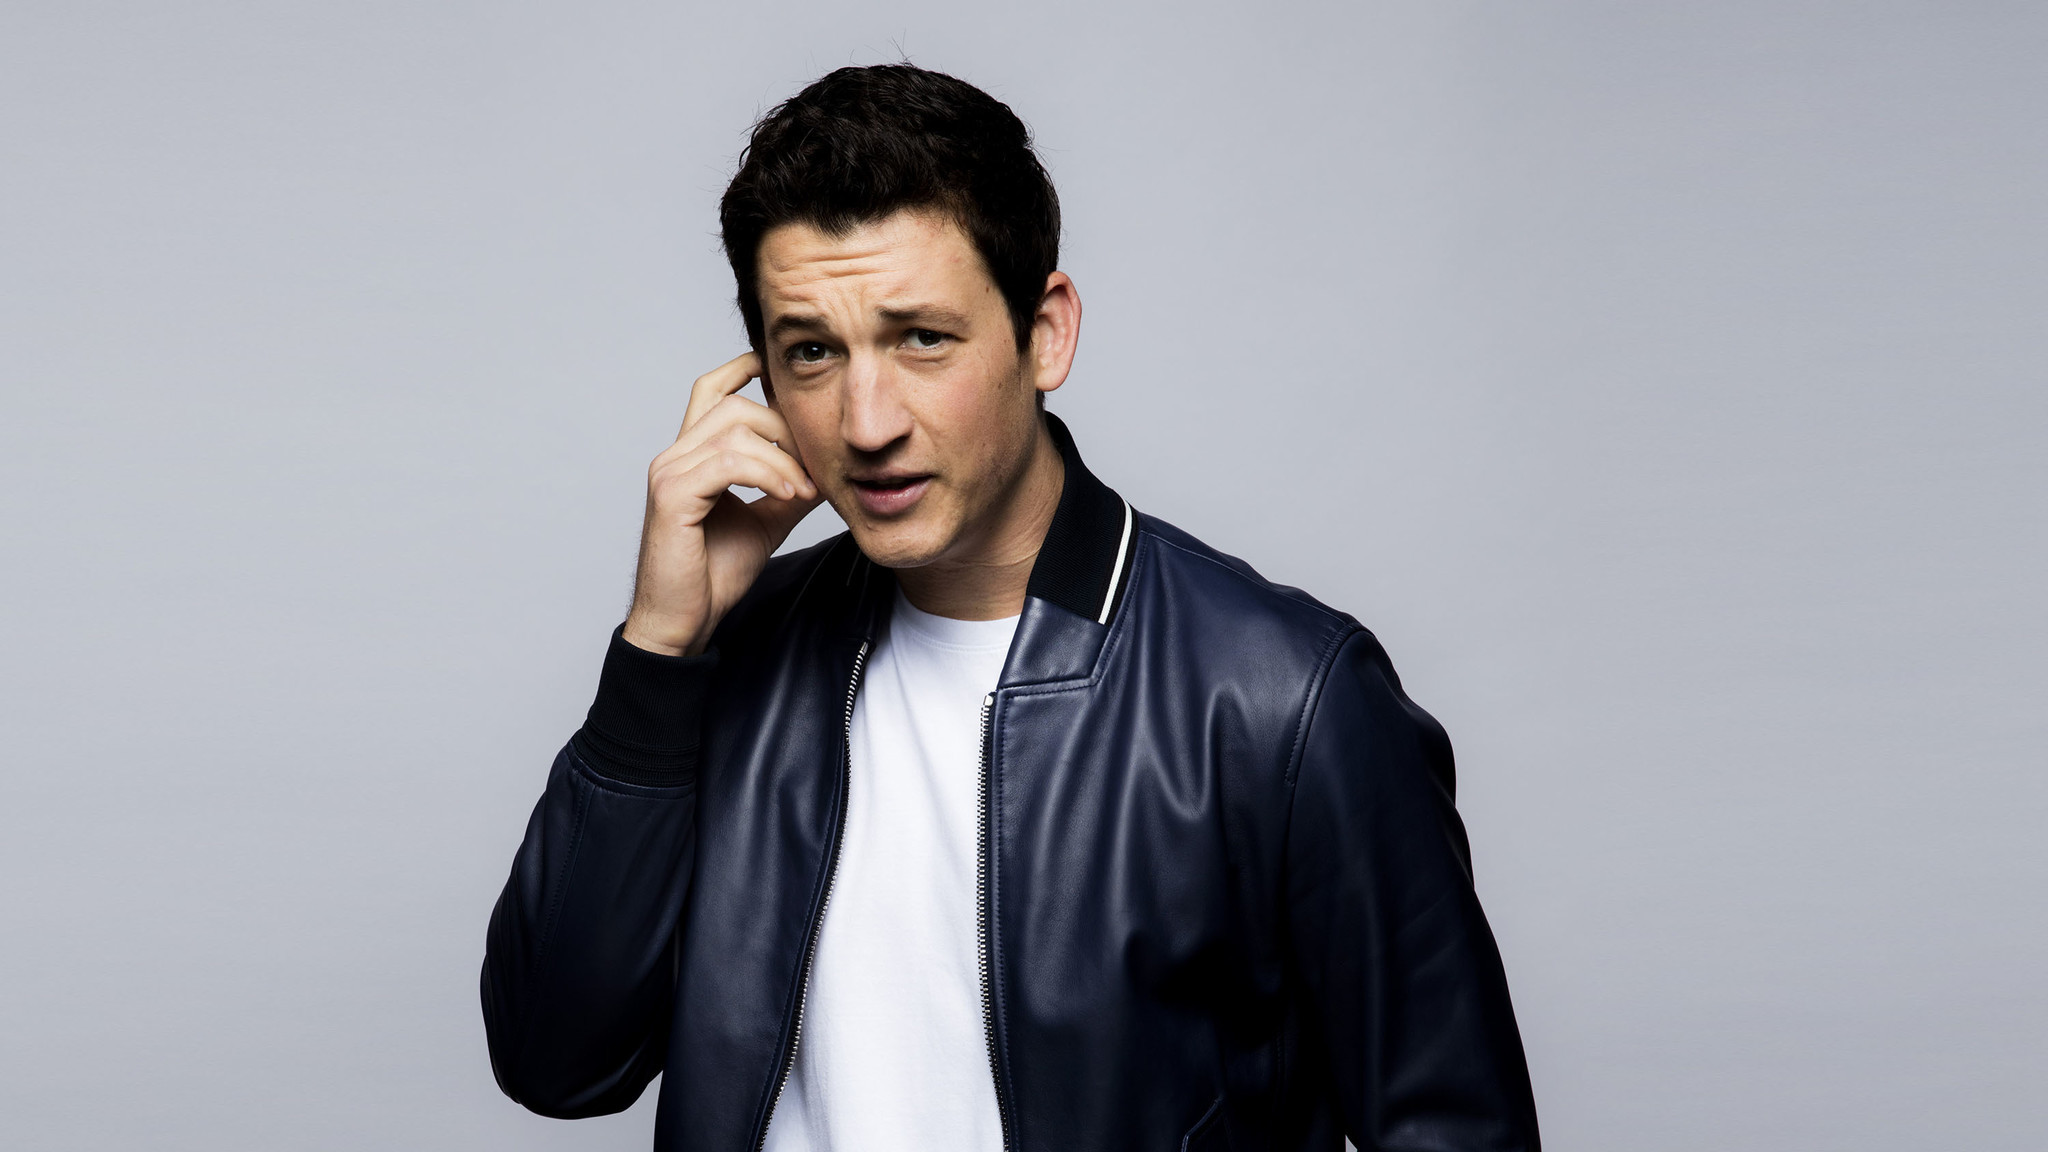 interview miles teller can relate to the comeback in bleed for interview miles teller can relate to the comeback in bleed for this redeye chicago